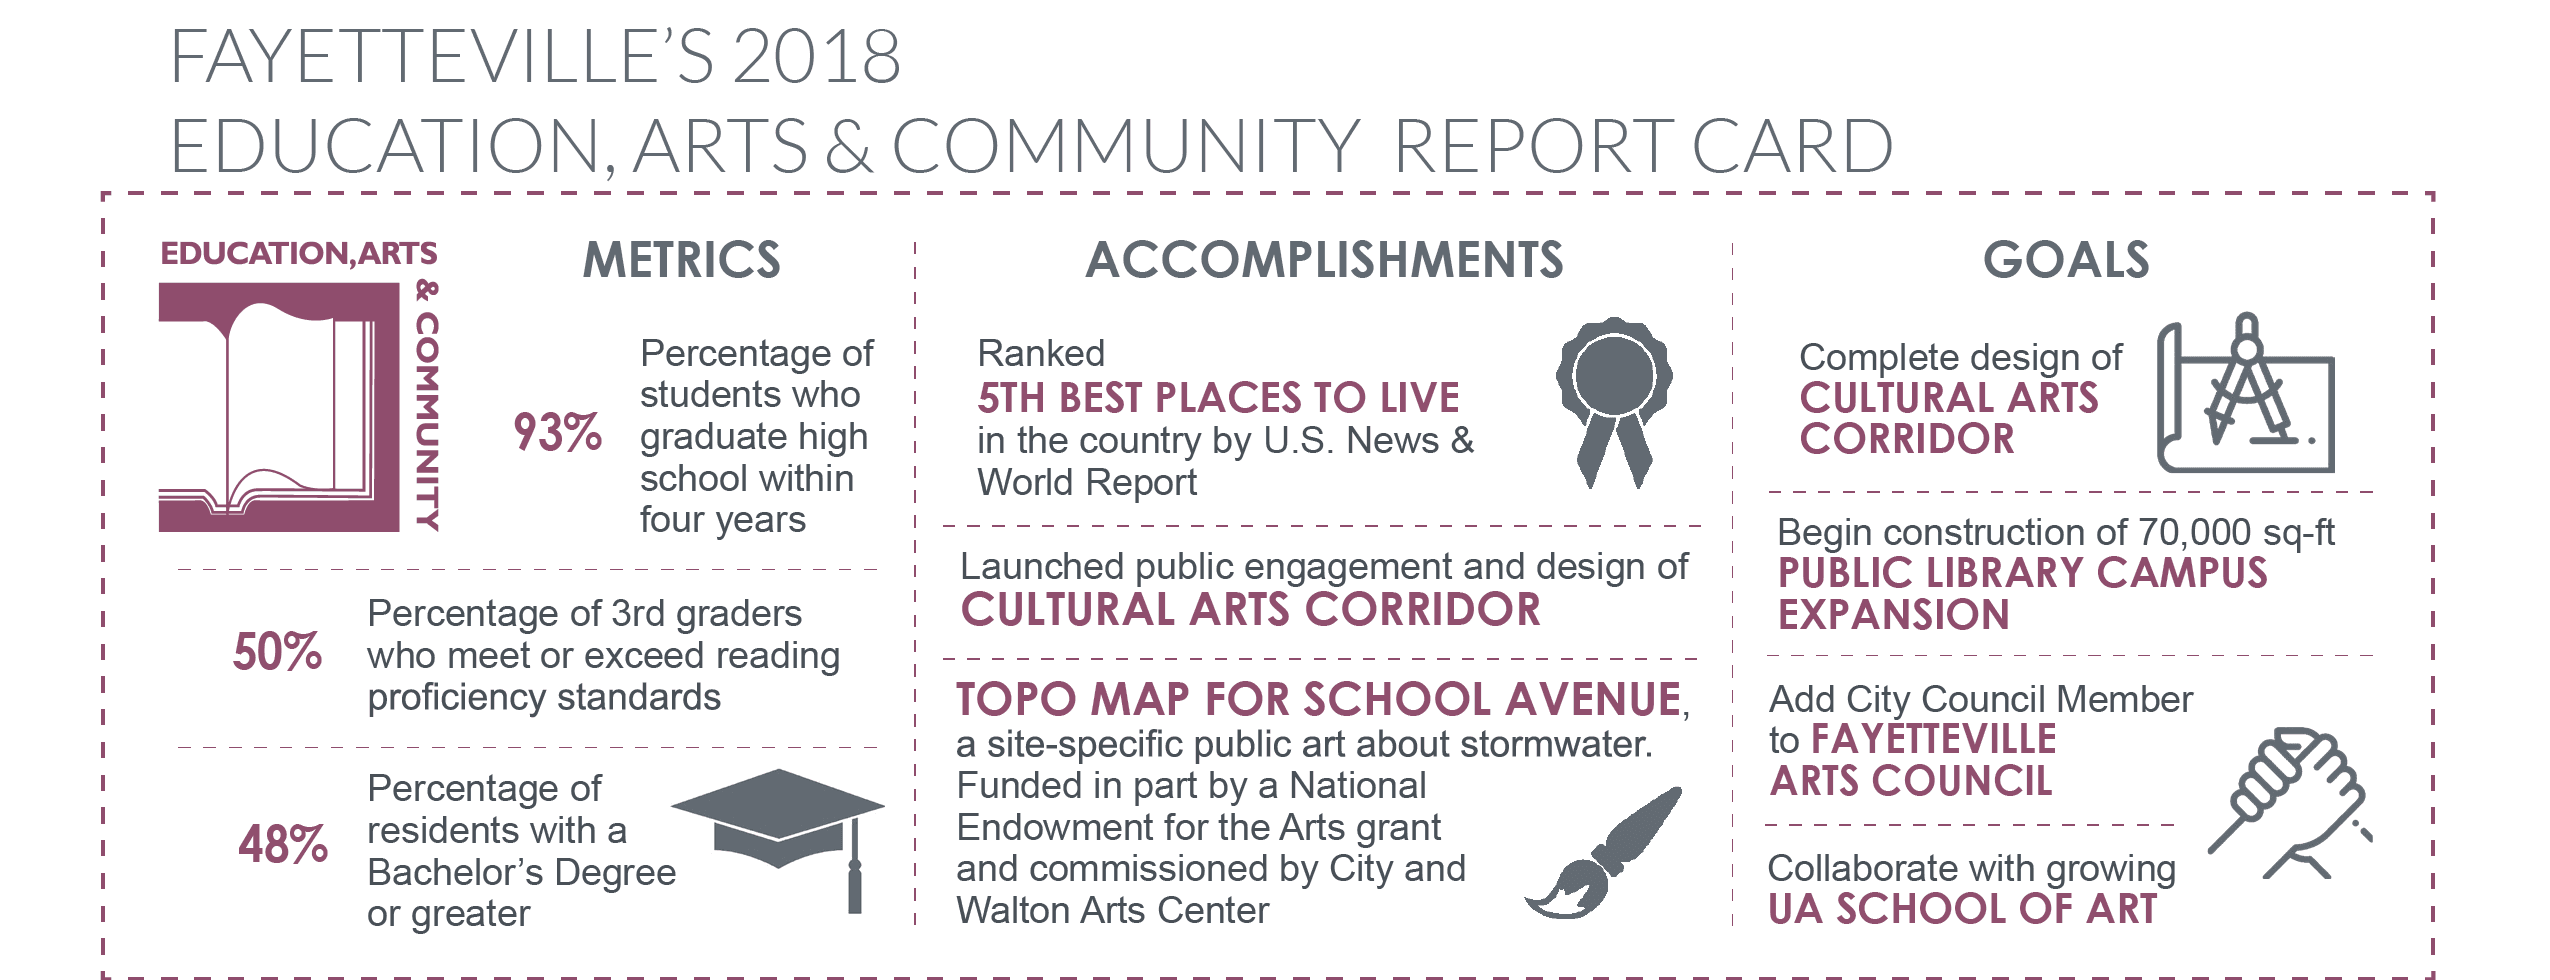 2018 Education, Arts and Community Report Card